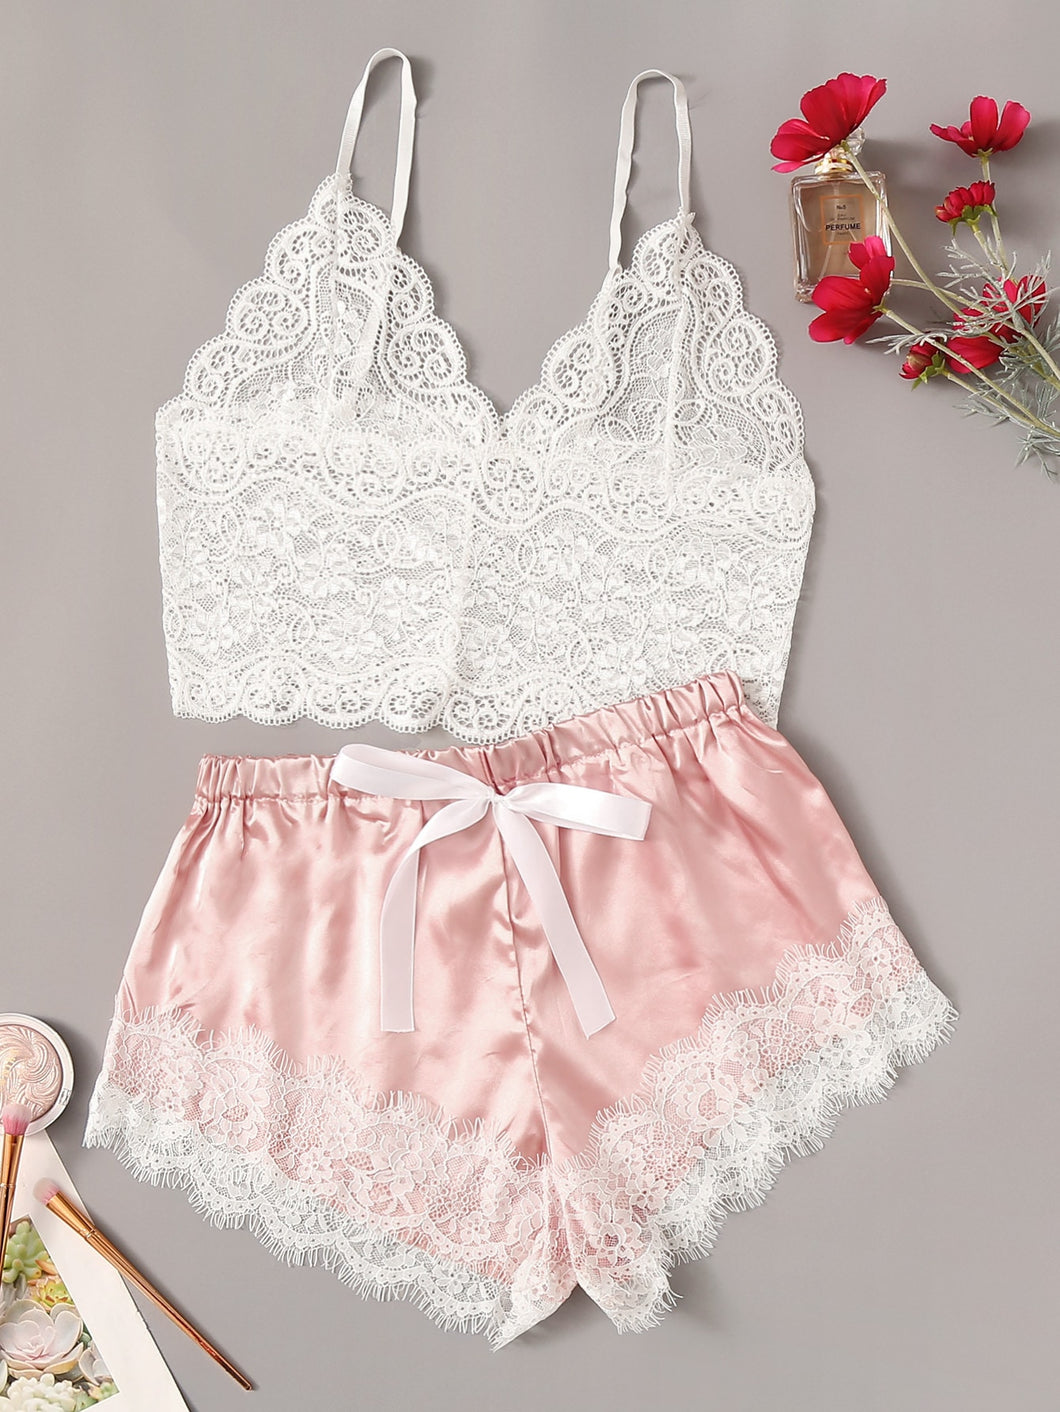 LINGERIE Floral Lace Cami Top With Satin Shorts - EK CHIC